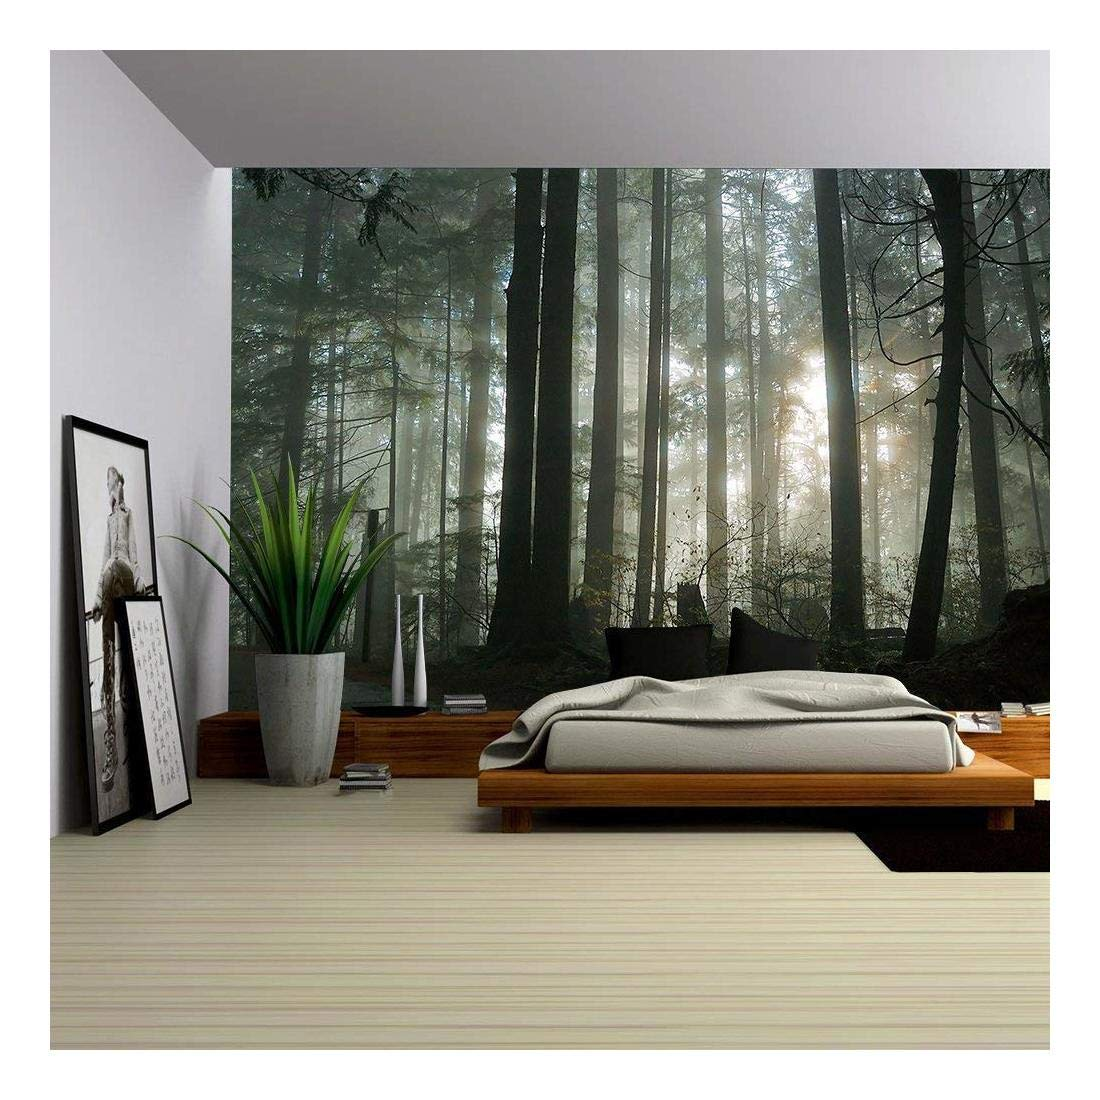 wall26 - Foggy Forest - Removable Wall Mural | Self-Adhesive Large Wallpaper - 100x144 inches by wall26 (Image #1)